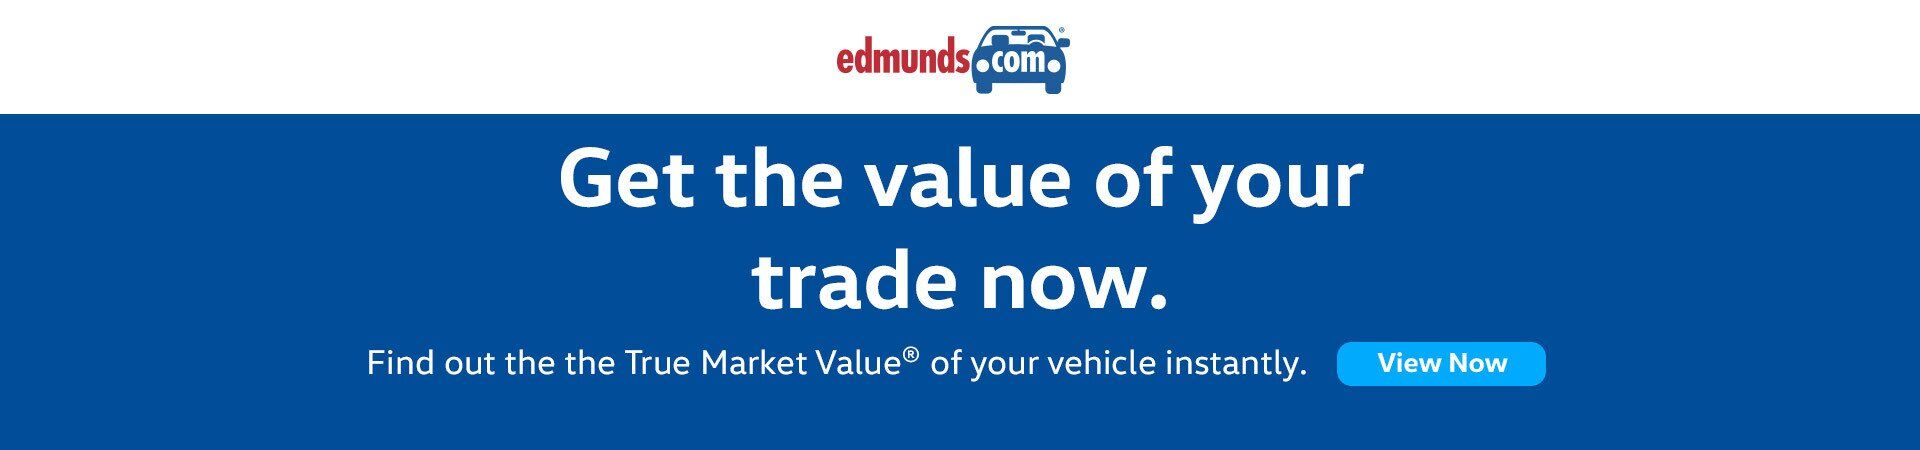 Value of Your Trade